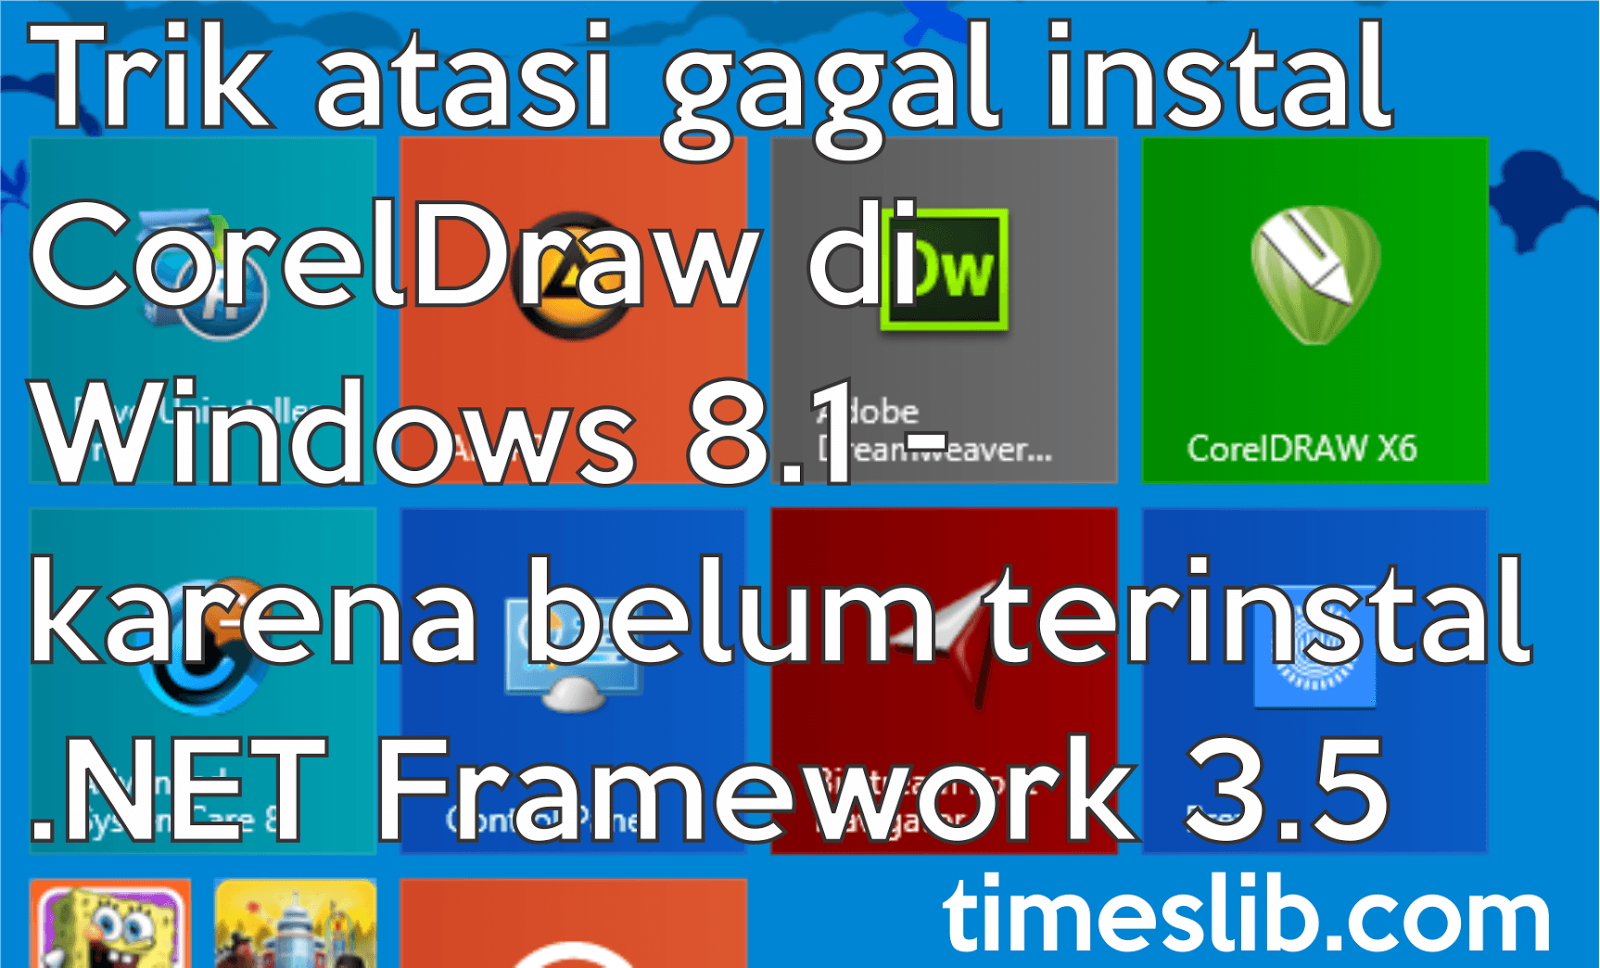 Trik atasi gagal instal CorelDraw di Windows 8.1